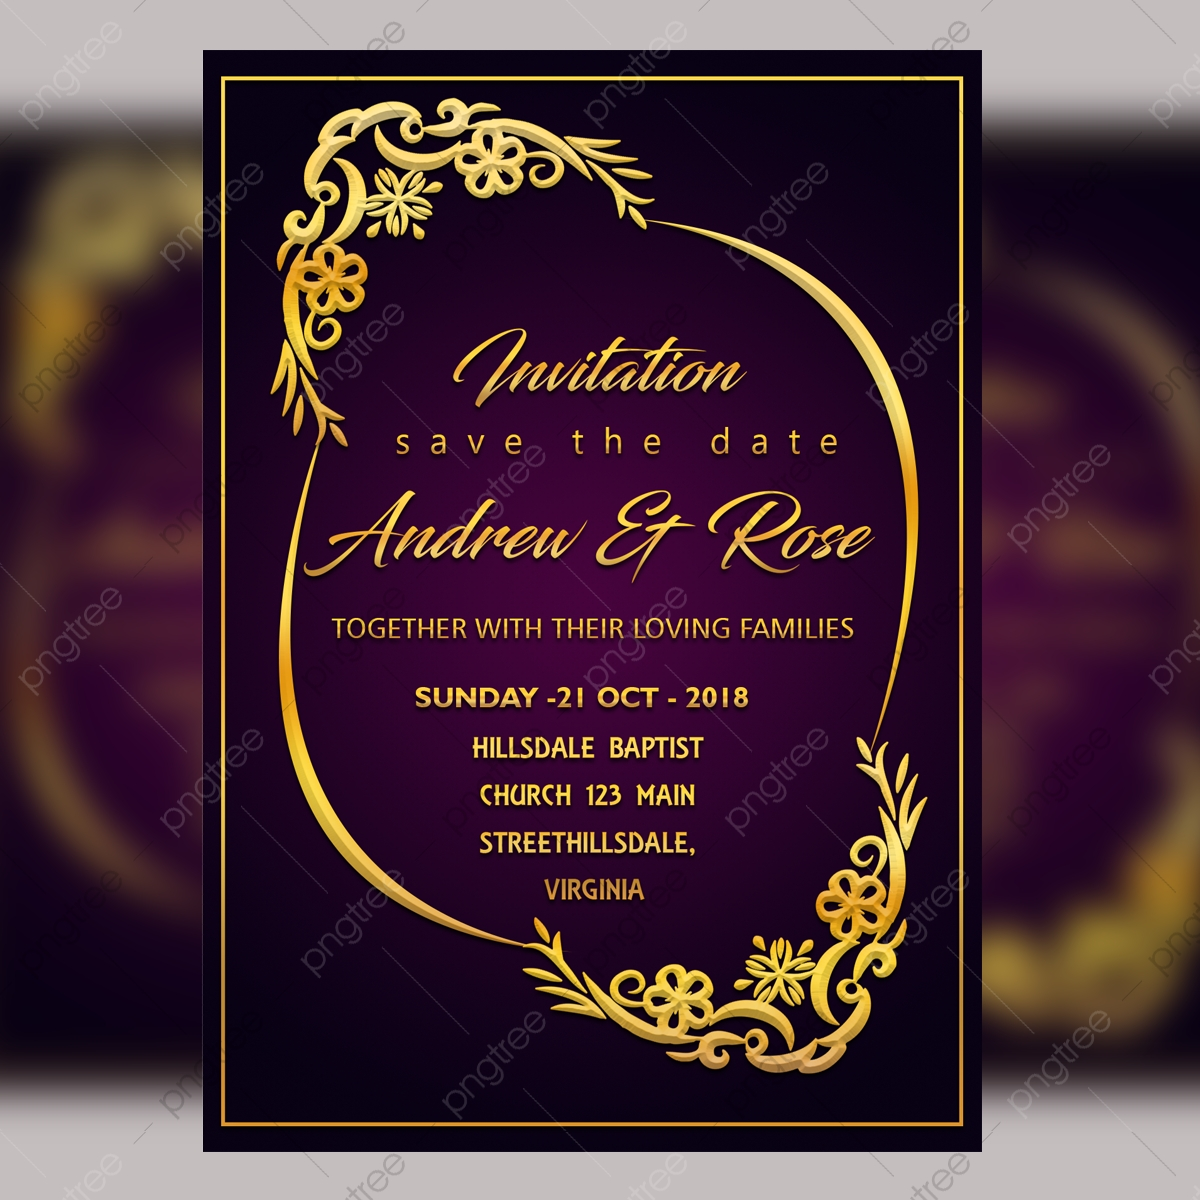 Purple Wedding Invitation Card Template Psd File With ...